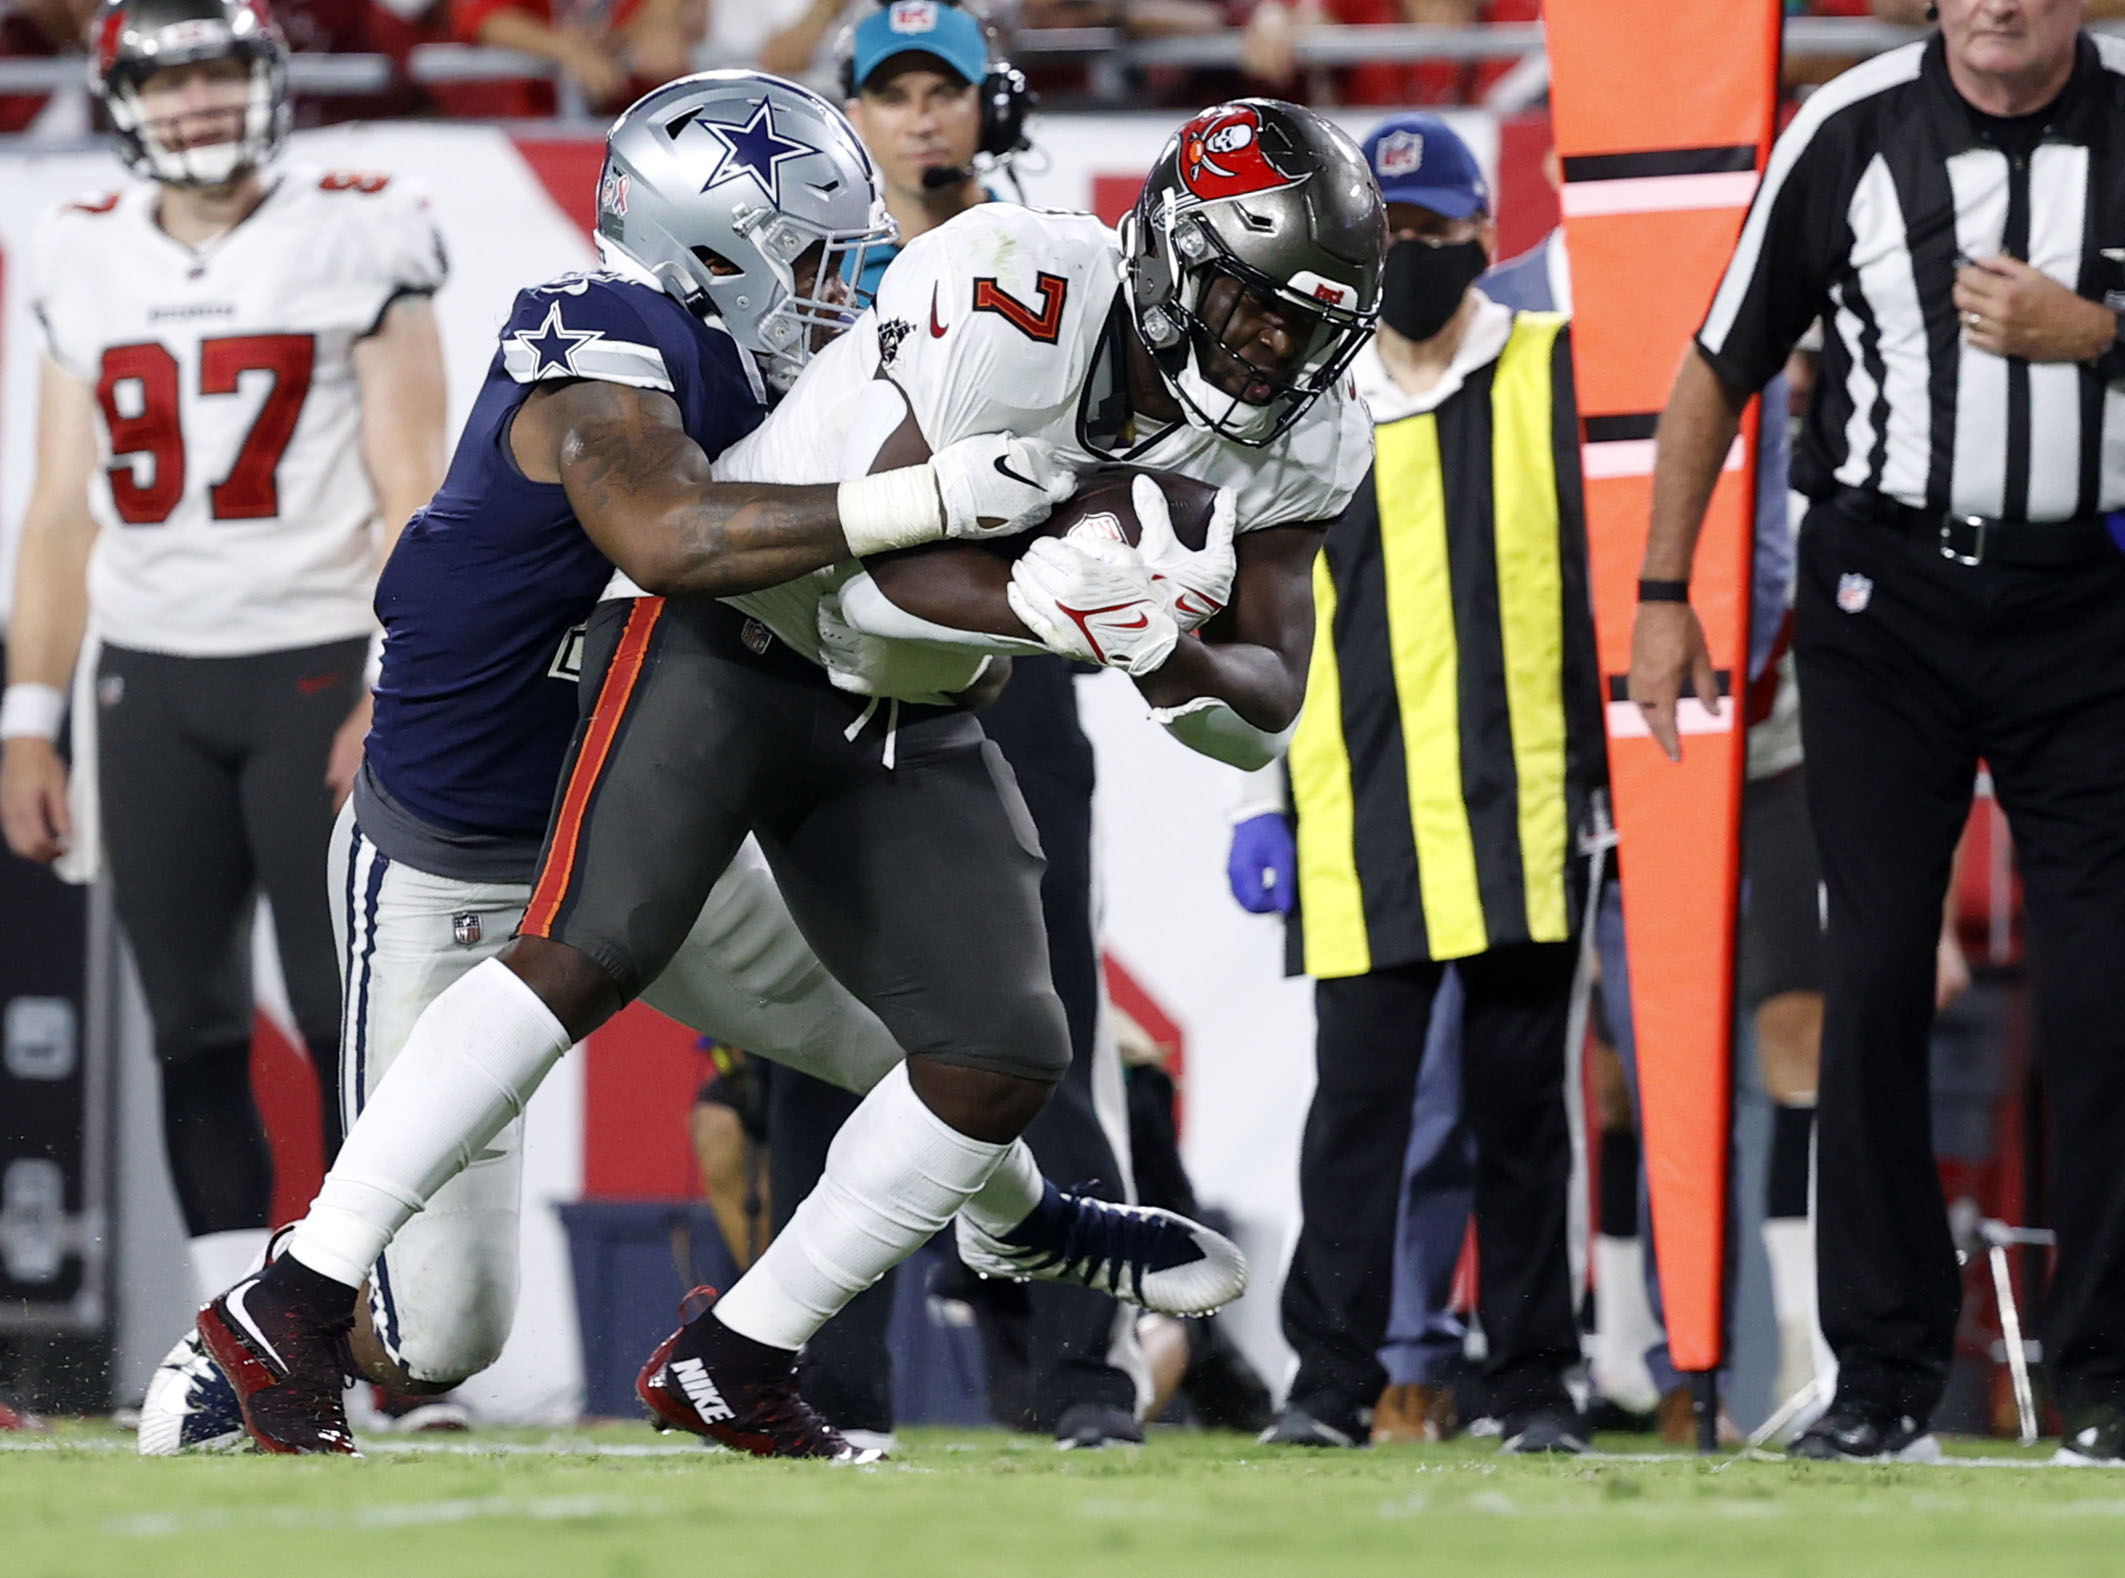 Tampa Bay Buccaneers running back Leonard Fournette (7) runs with the ball against Dallas Cowboys linebacker Micah Parsons (11) during the second half at Raymond James Stadium. Mandatory Credit: Kim Klement